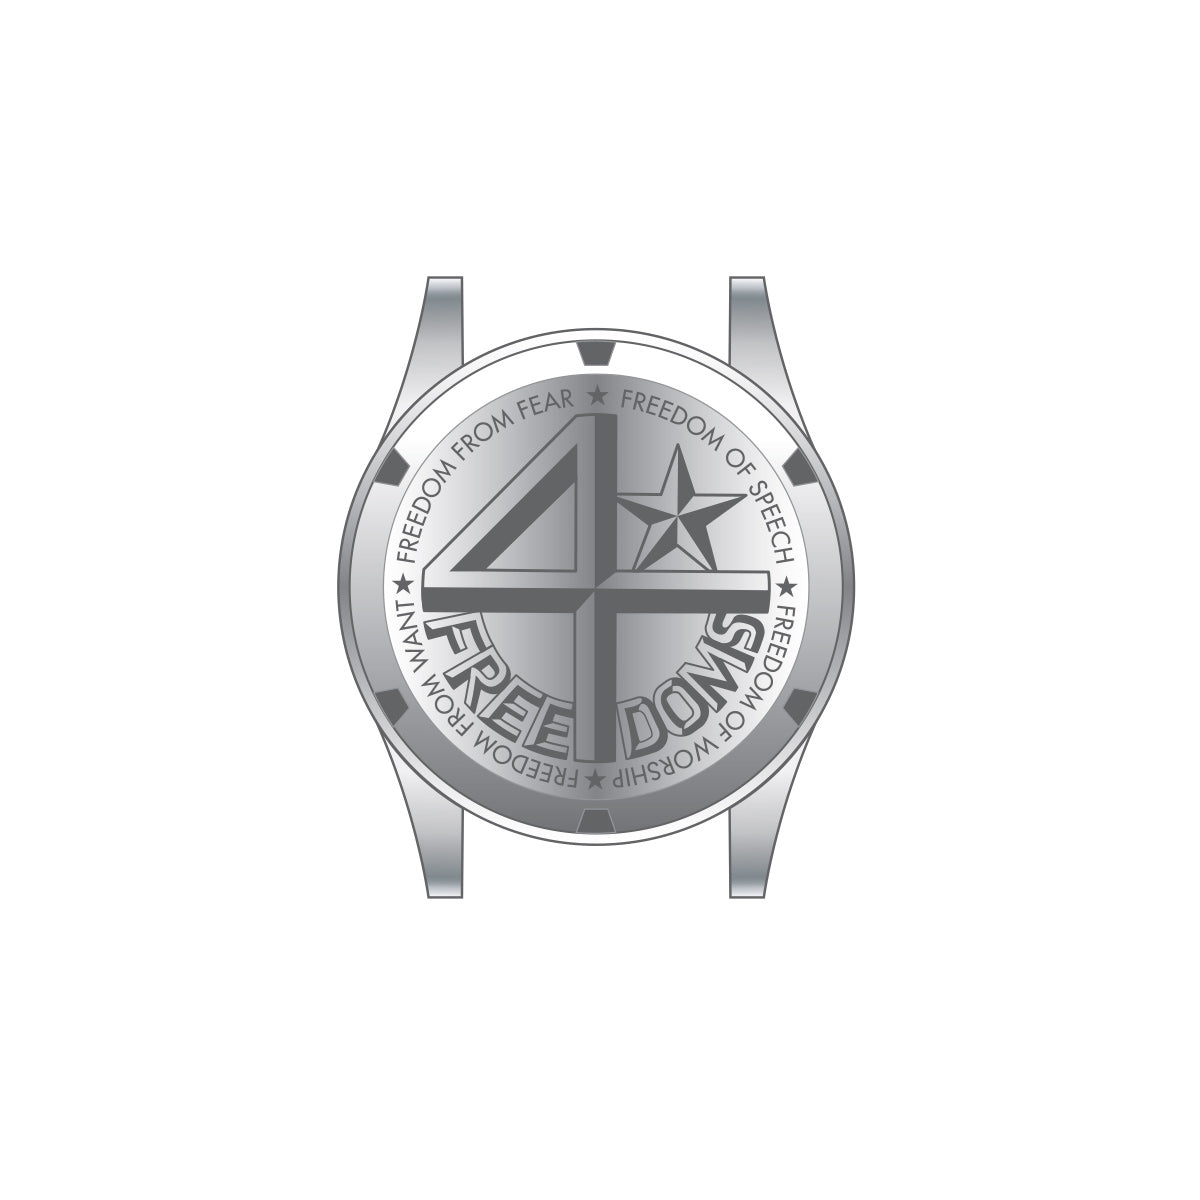 40N6.2.8M 40Nine 43mm 4Freedoms Watch